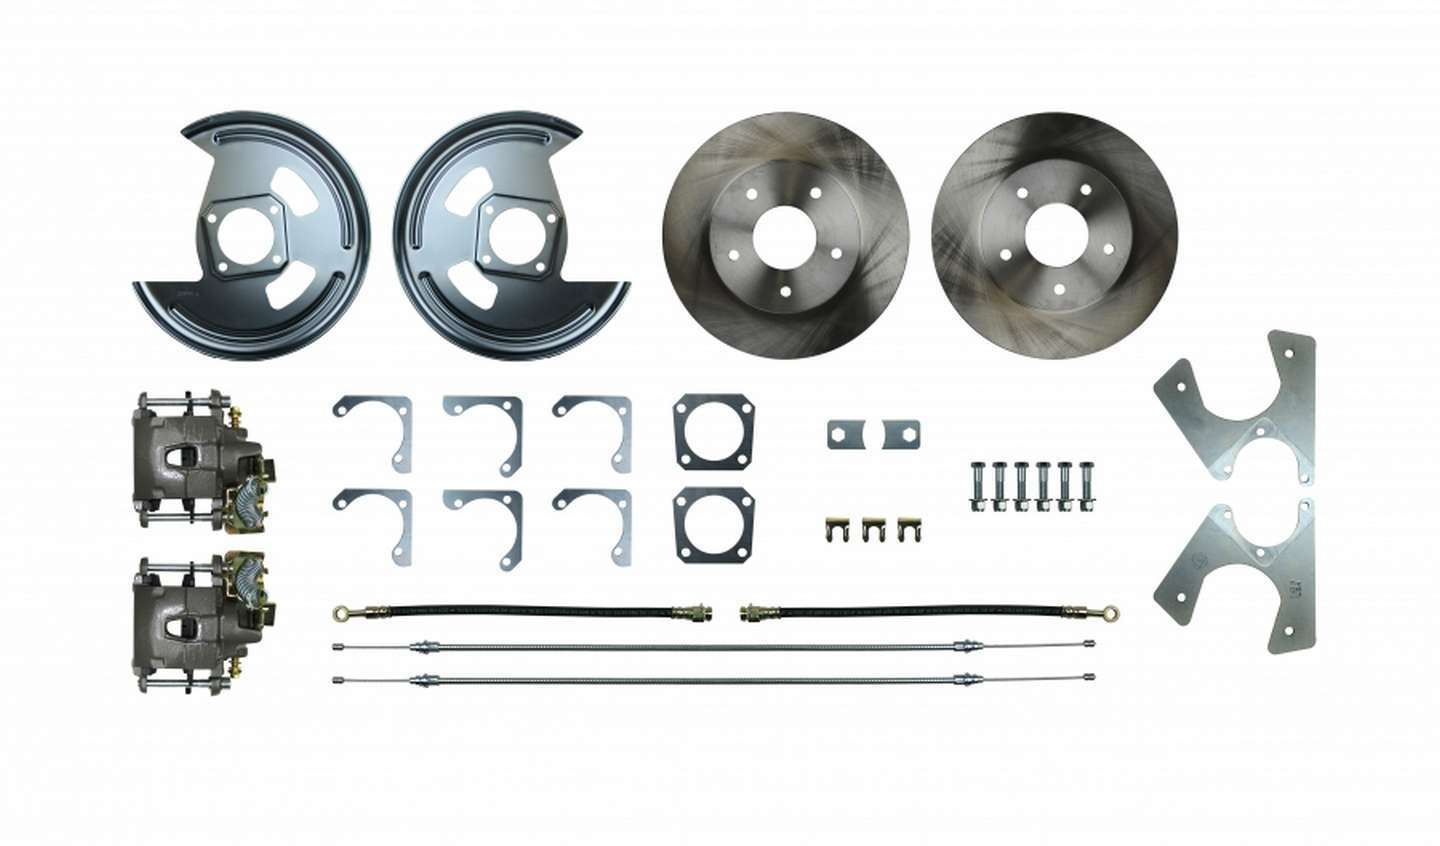 Right Stuff Detailing AFXRD01 Brake System, Disc Conversion, Rear, 1 Piston Caliper, 11.000 in Rotor, Offset Hat, Iron, Natural, GM 10-Bolt / 12-Bolt, Kit